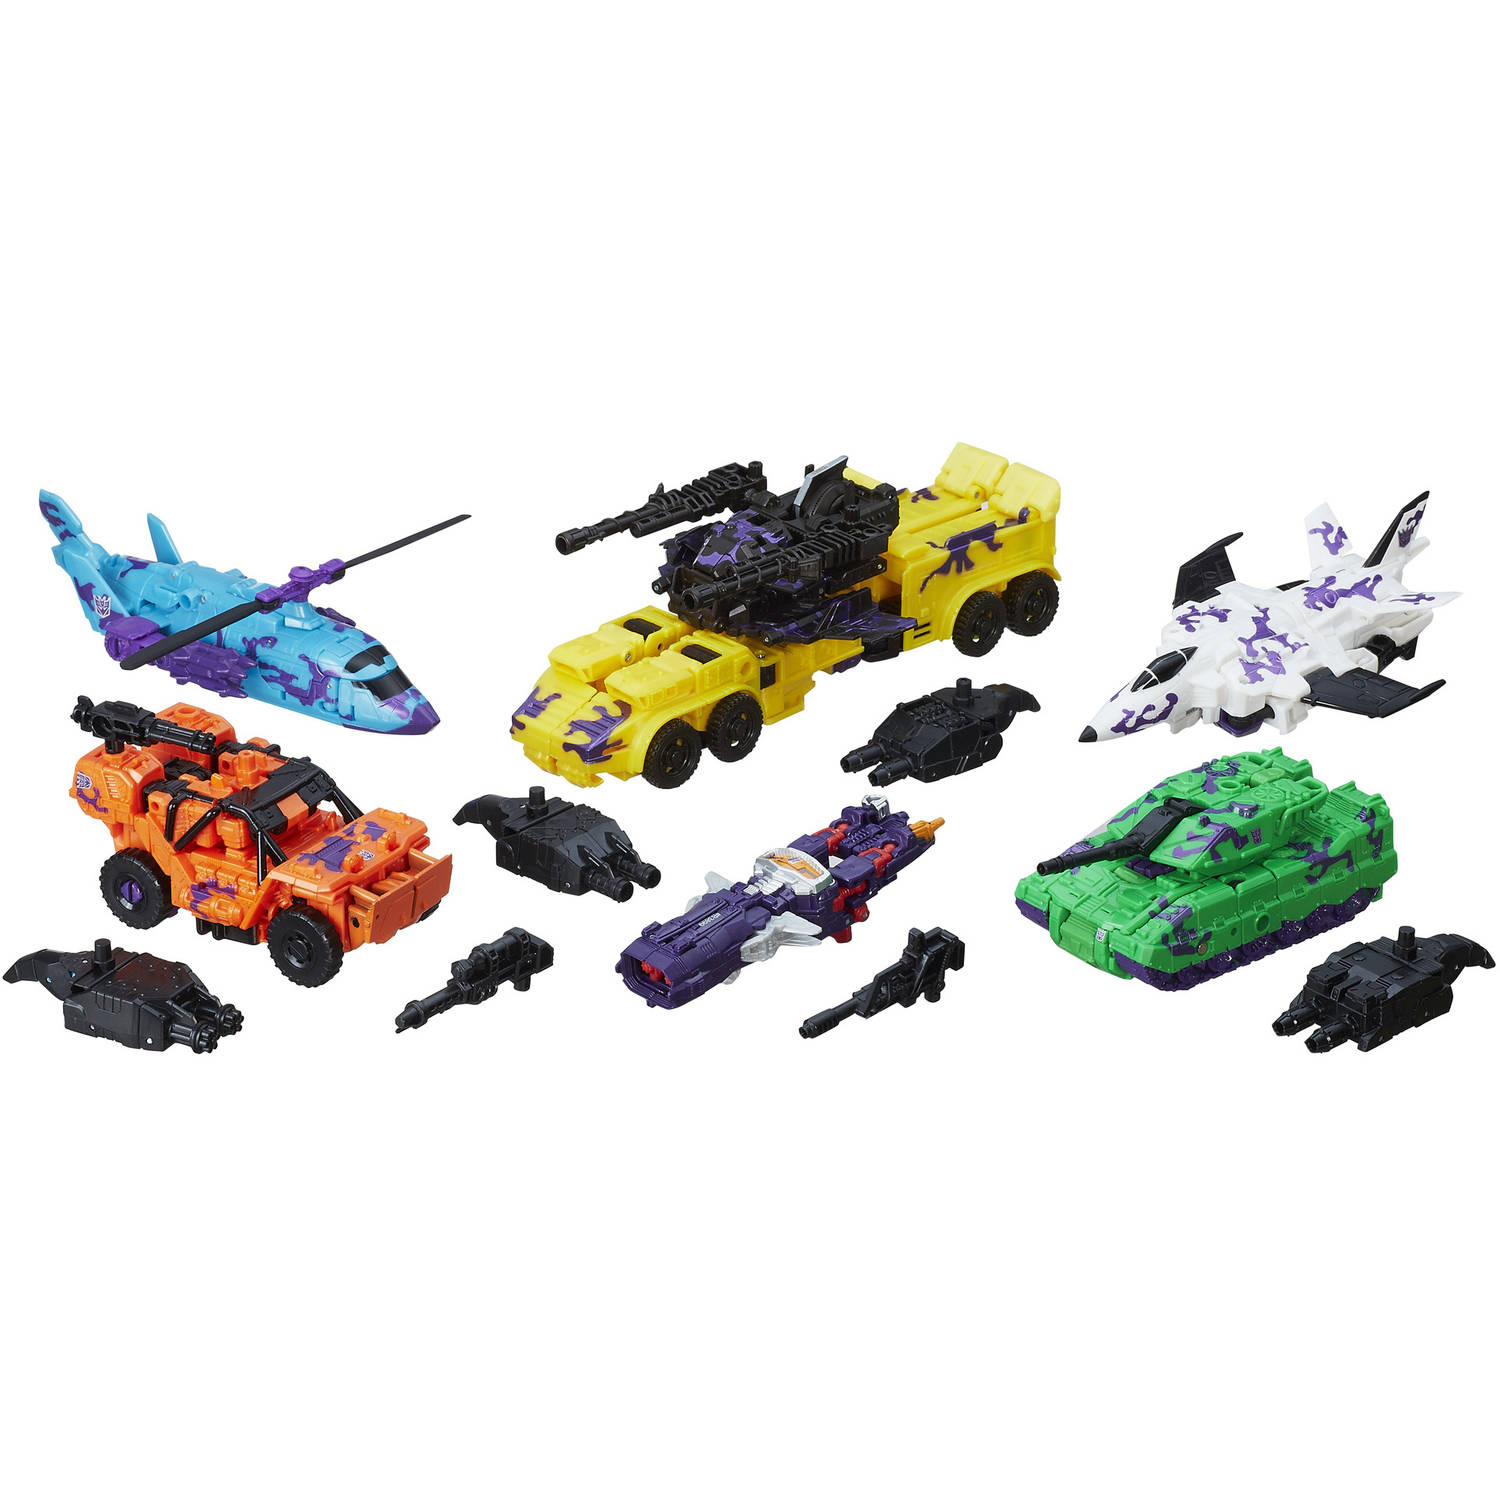 Transformers Generations Combiner Wars Bruticus Collection Pack by GFT Vietnam Company Limited